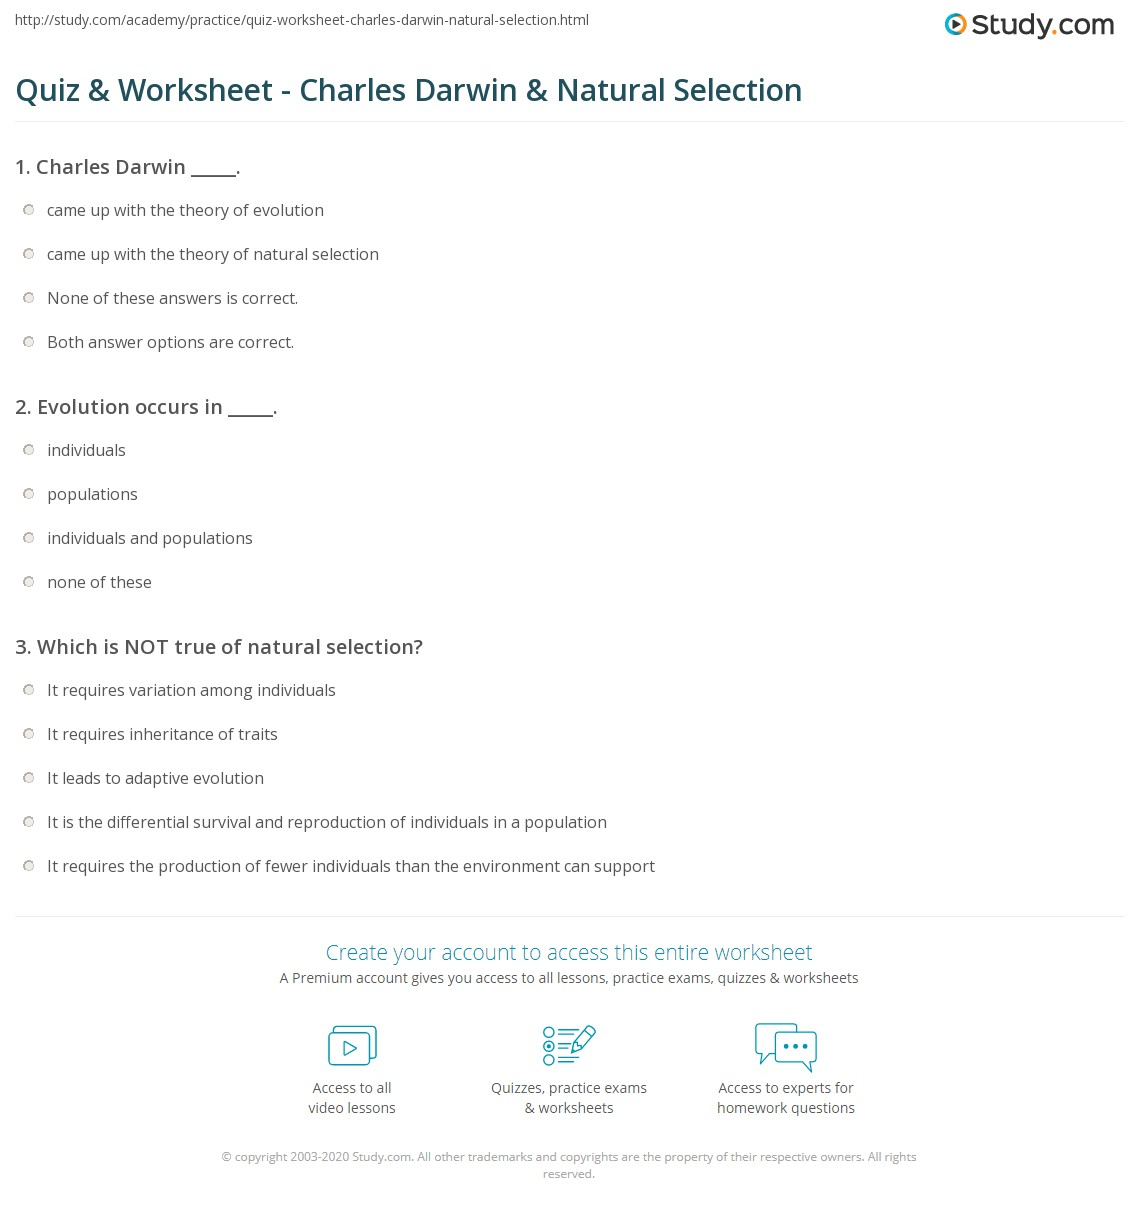 Quiz & Worksheet - Charles Darwin & Natural Selection | Study.com